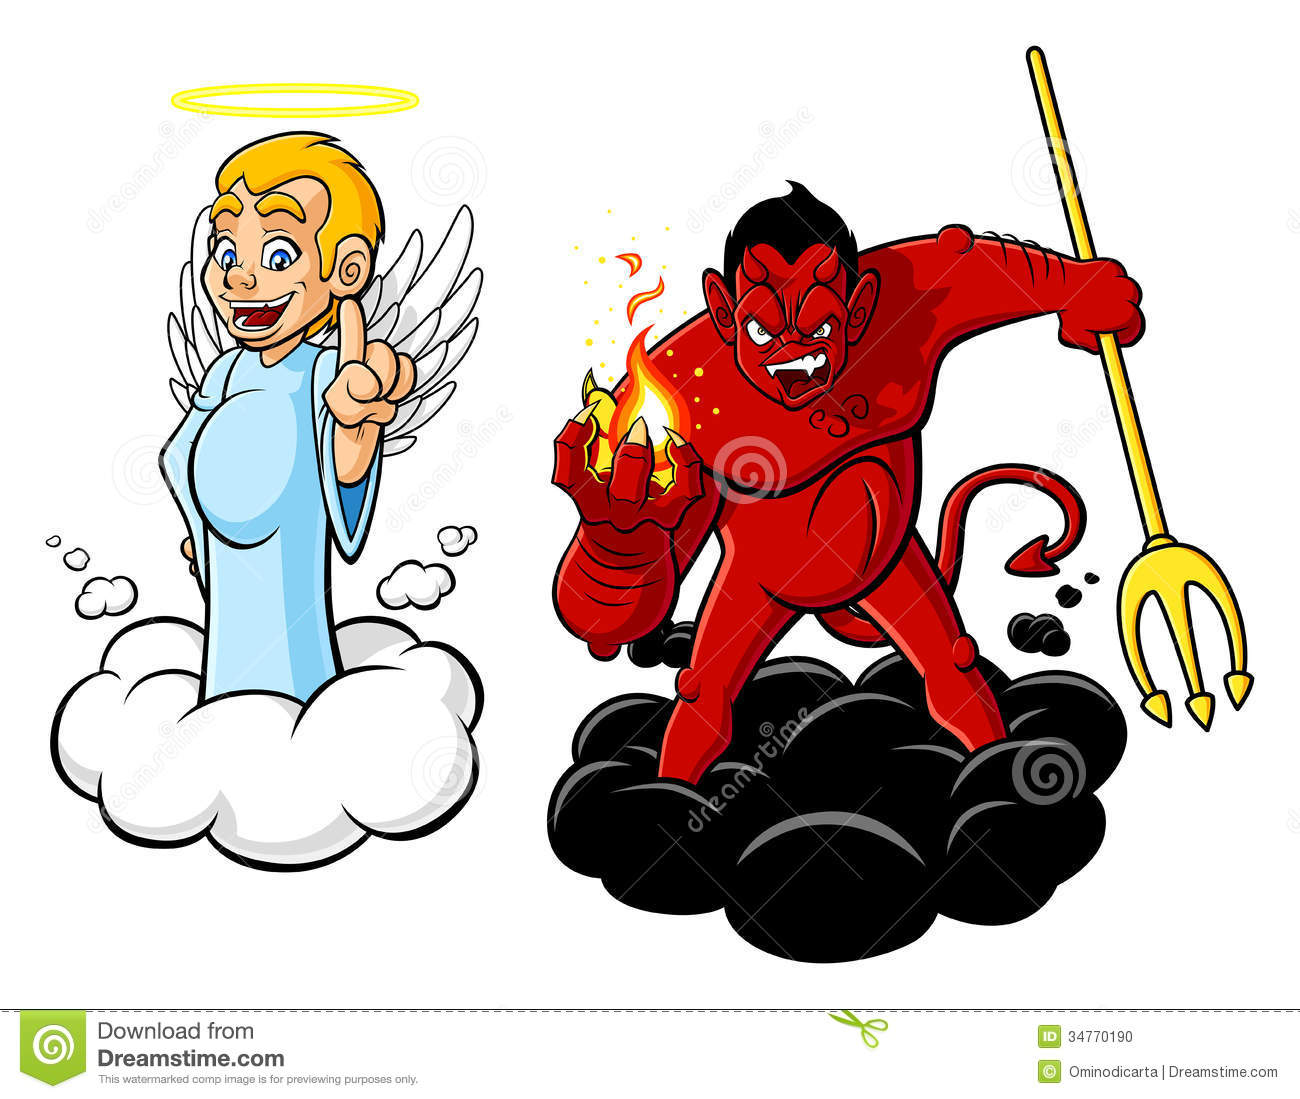 Cartoon Characters Evil : Good and evil stock vector illustration of characters